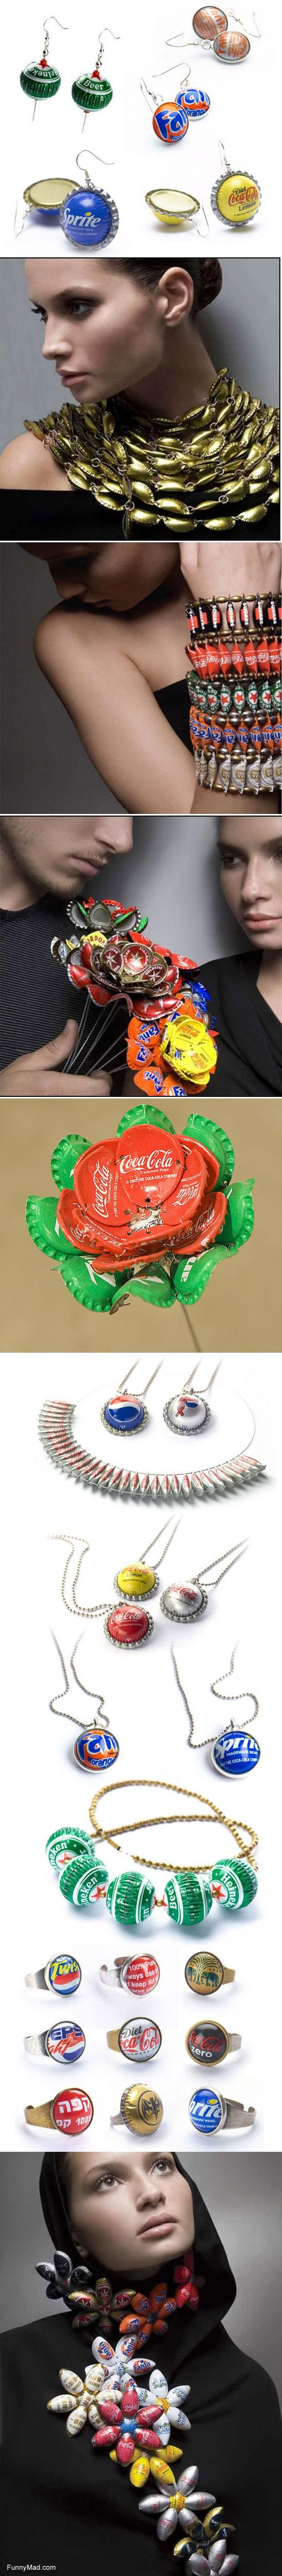 Bottle Cap Jewelry #diy #craft